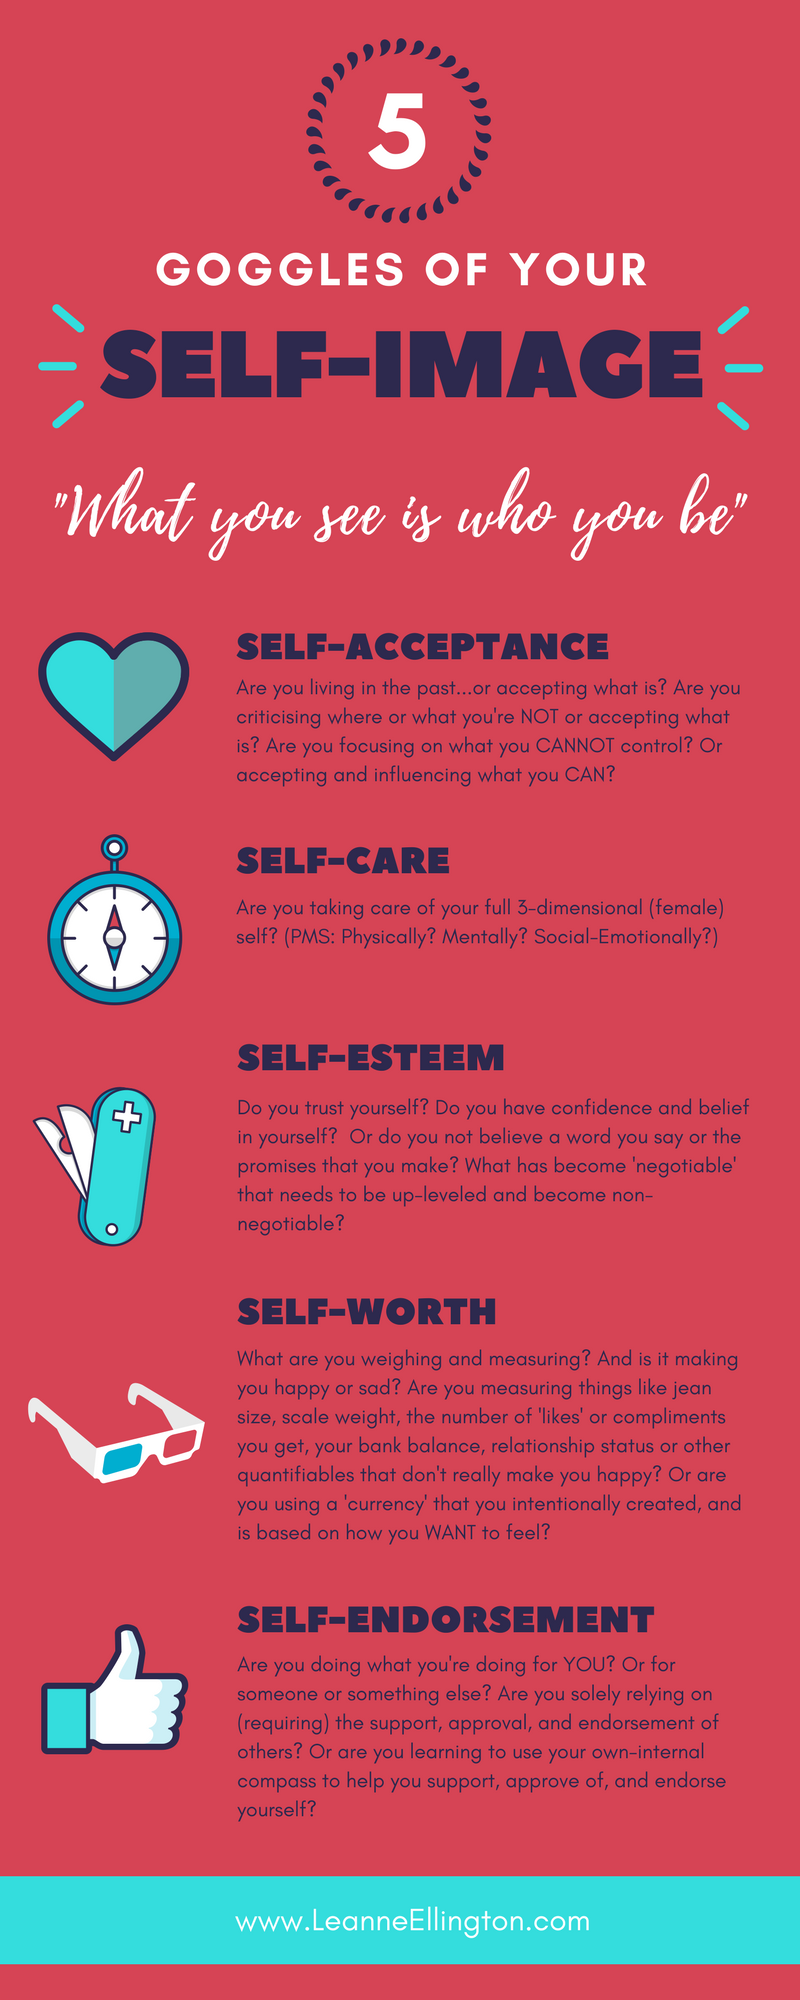 The 5 Goggles of Your Self Image, Self Acceptance, Self Love, Self Esteem, Self Worth